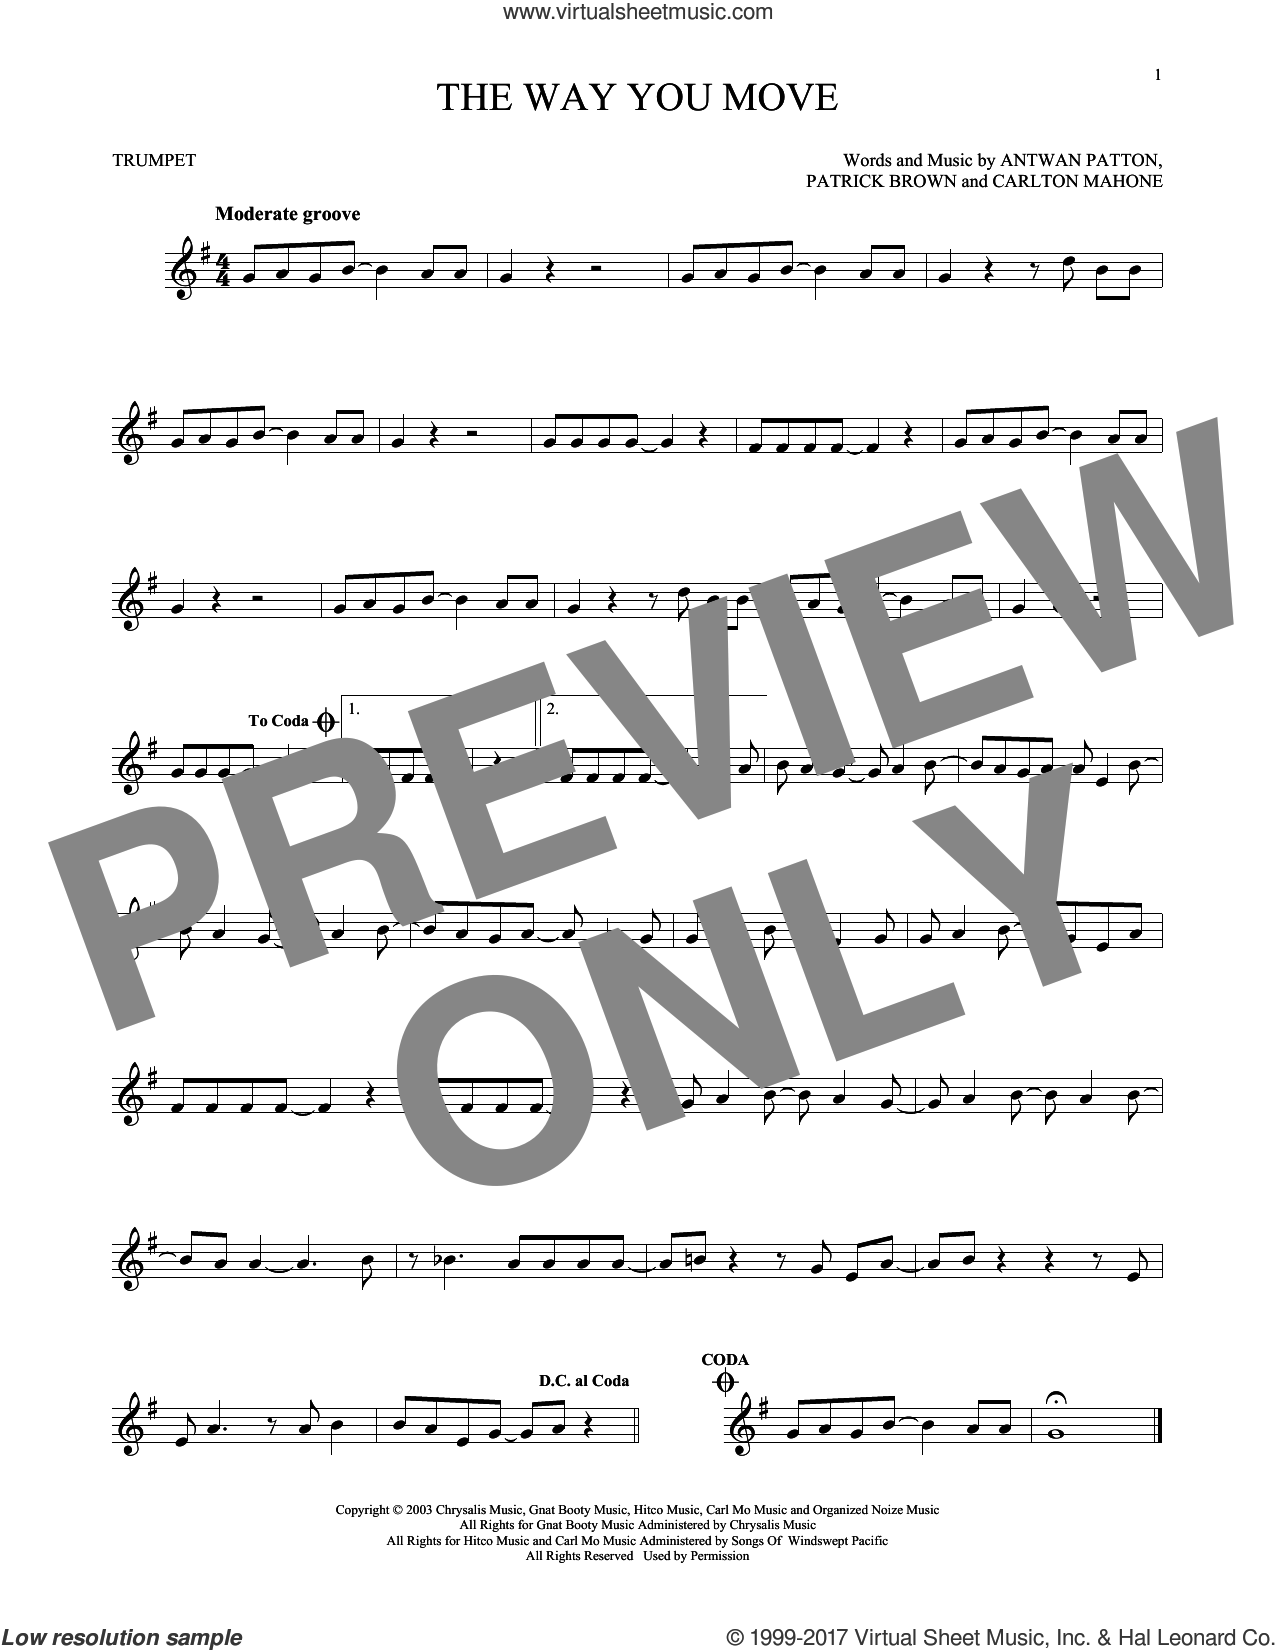 The Way You Move sheet music for trumpet solo by Outkast featuring Sleepy Brown, Antwon Patton, Cartlon Mahone and Patrick Brown, intermediate skill level